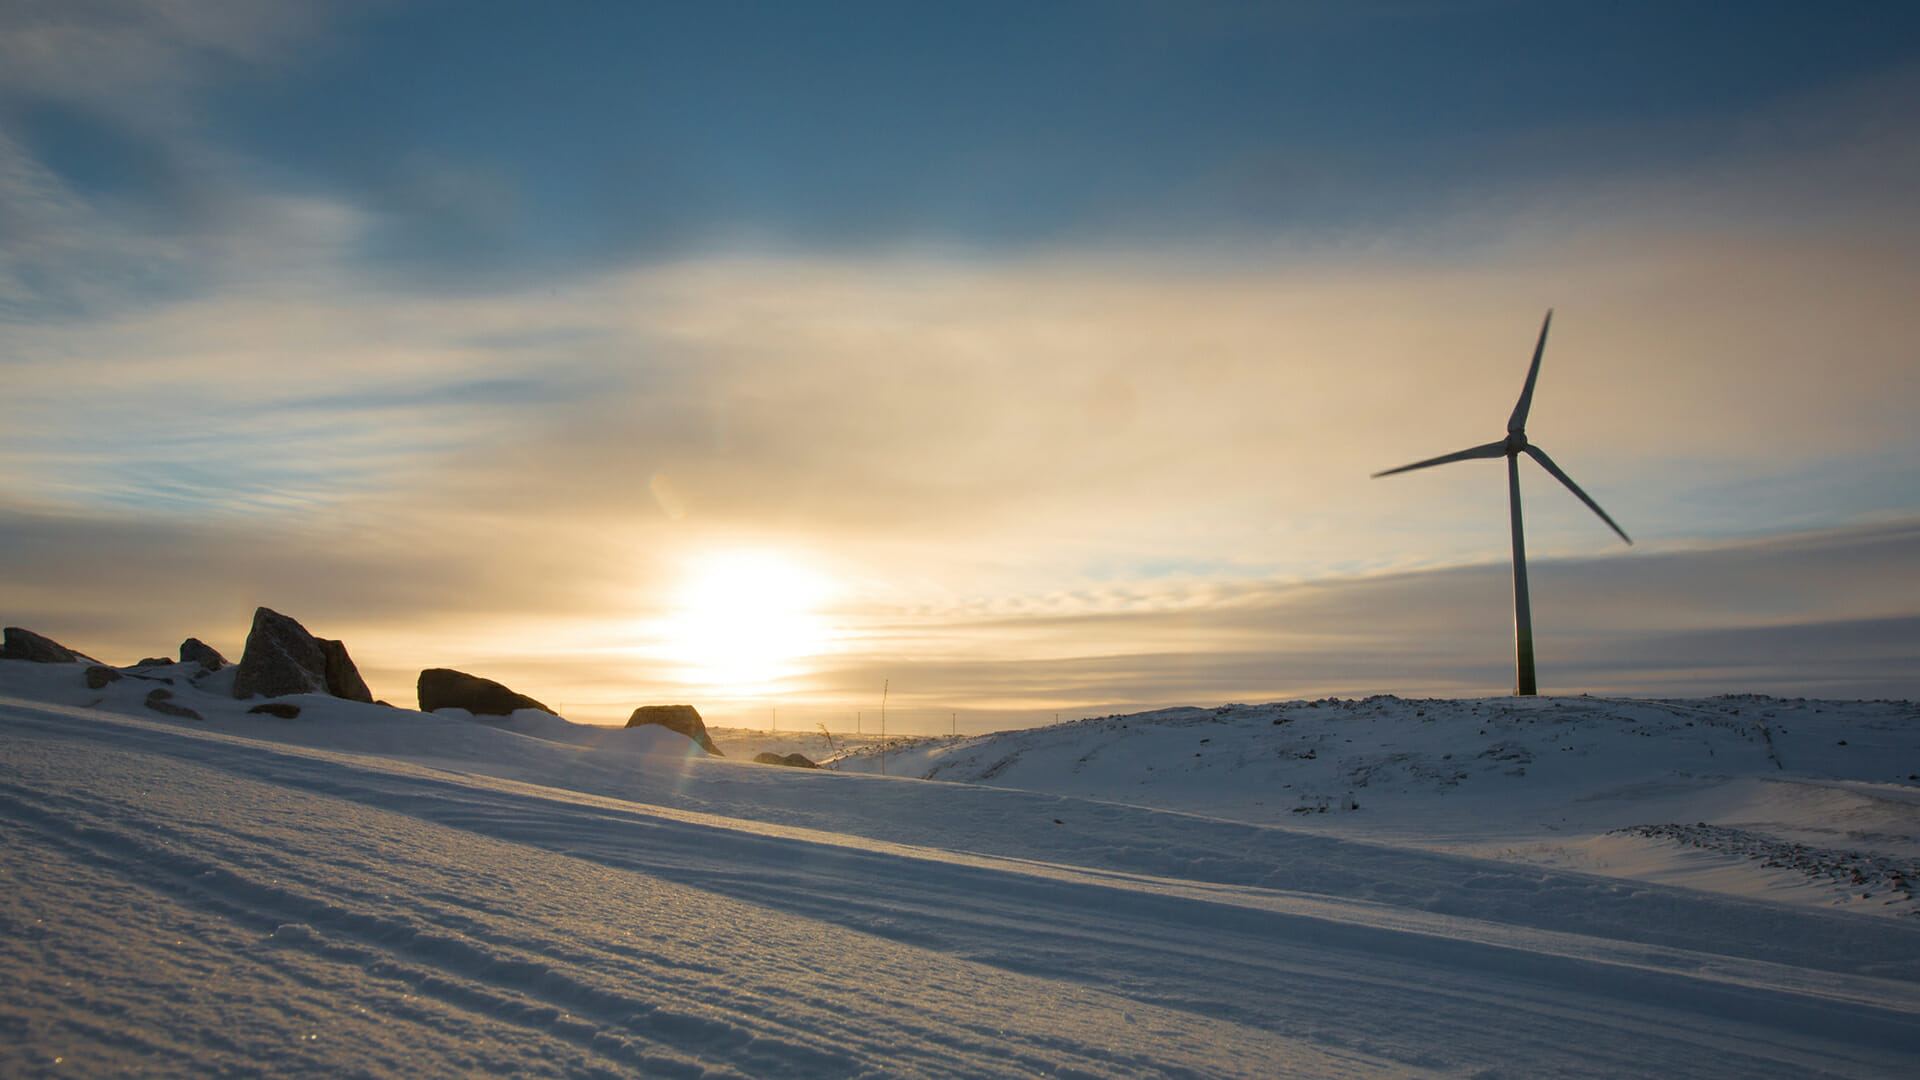 Turbine in snowy landscape